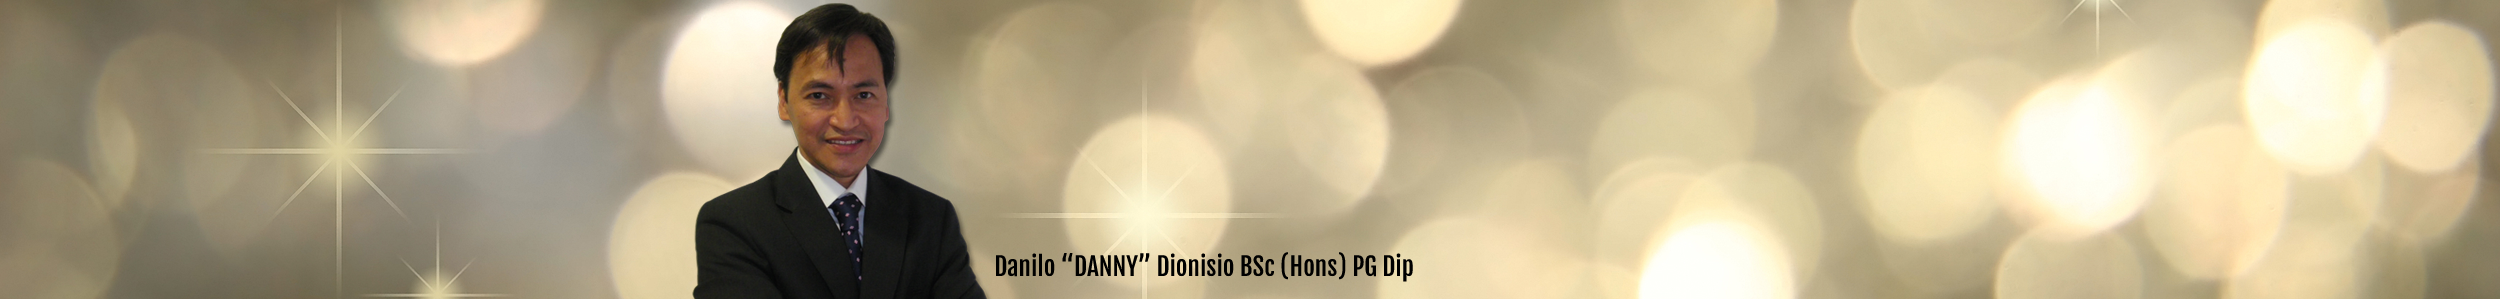 "Danillo ""Danny"" Dionisio BSc (Hons) PG Dip is the owner of the Walk IN Foot Clinic in central London"